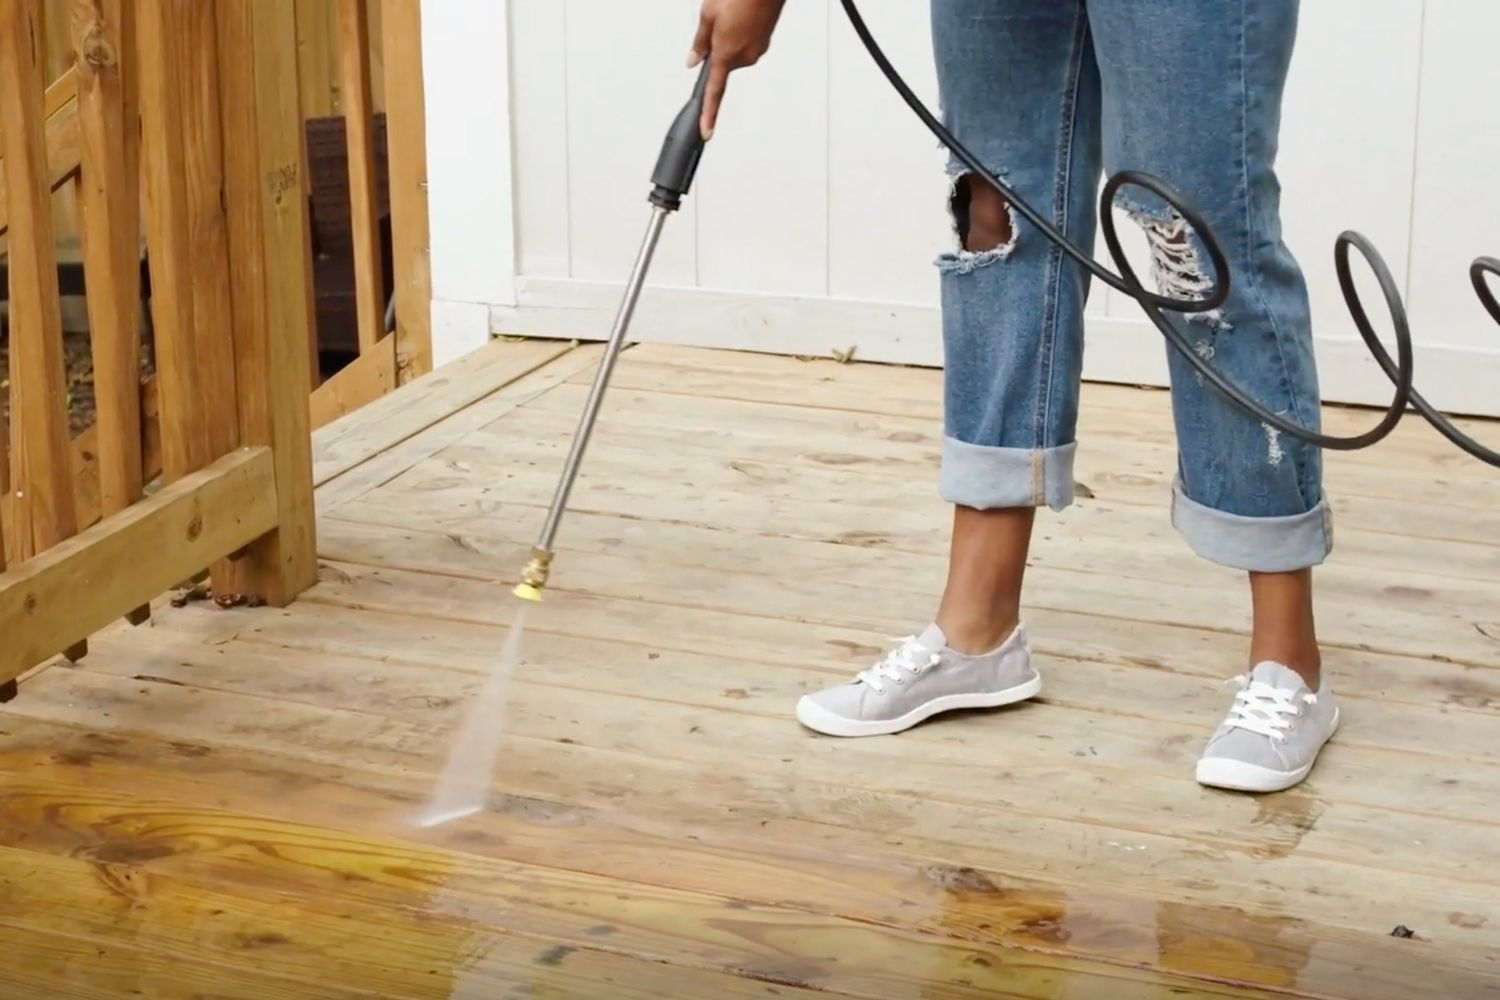 person power washing a wood deck